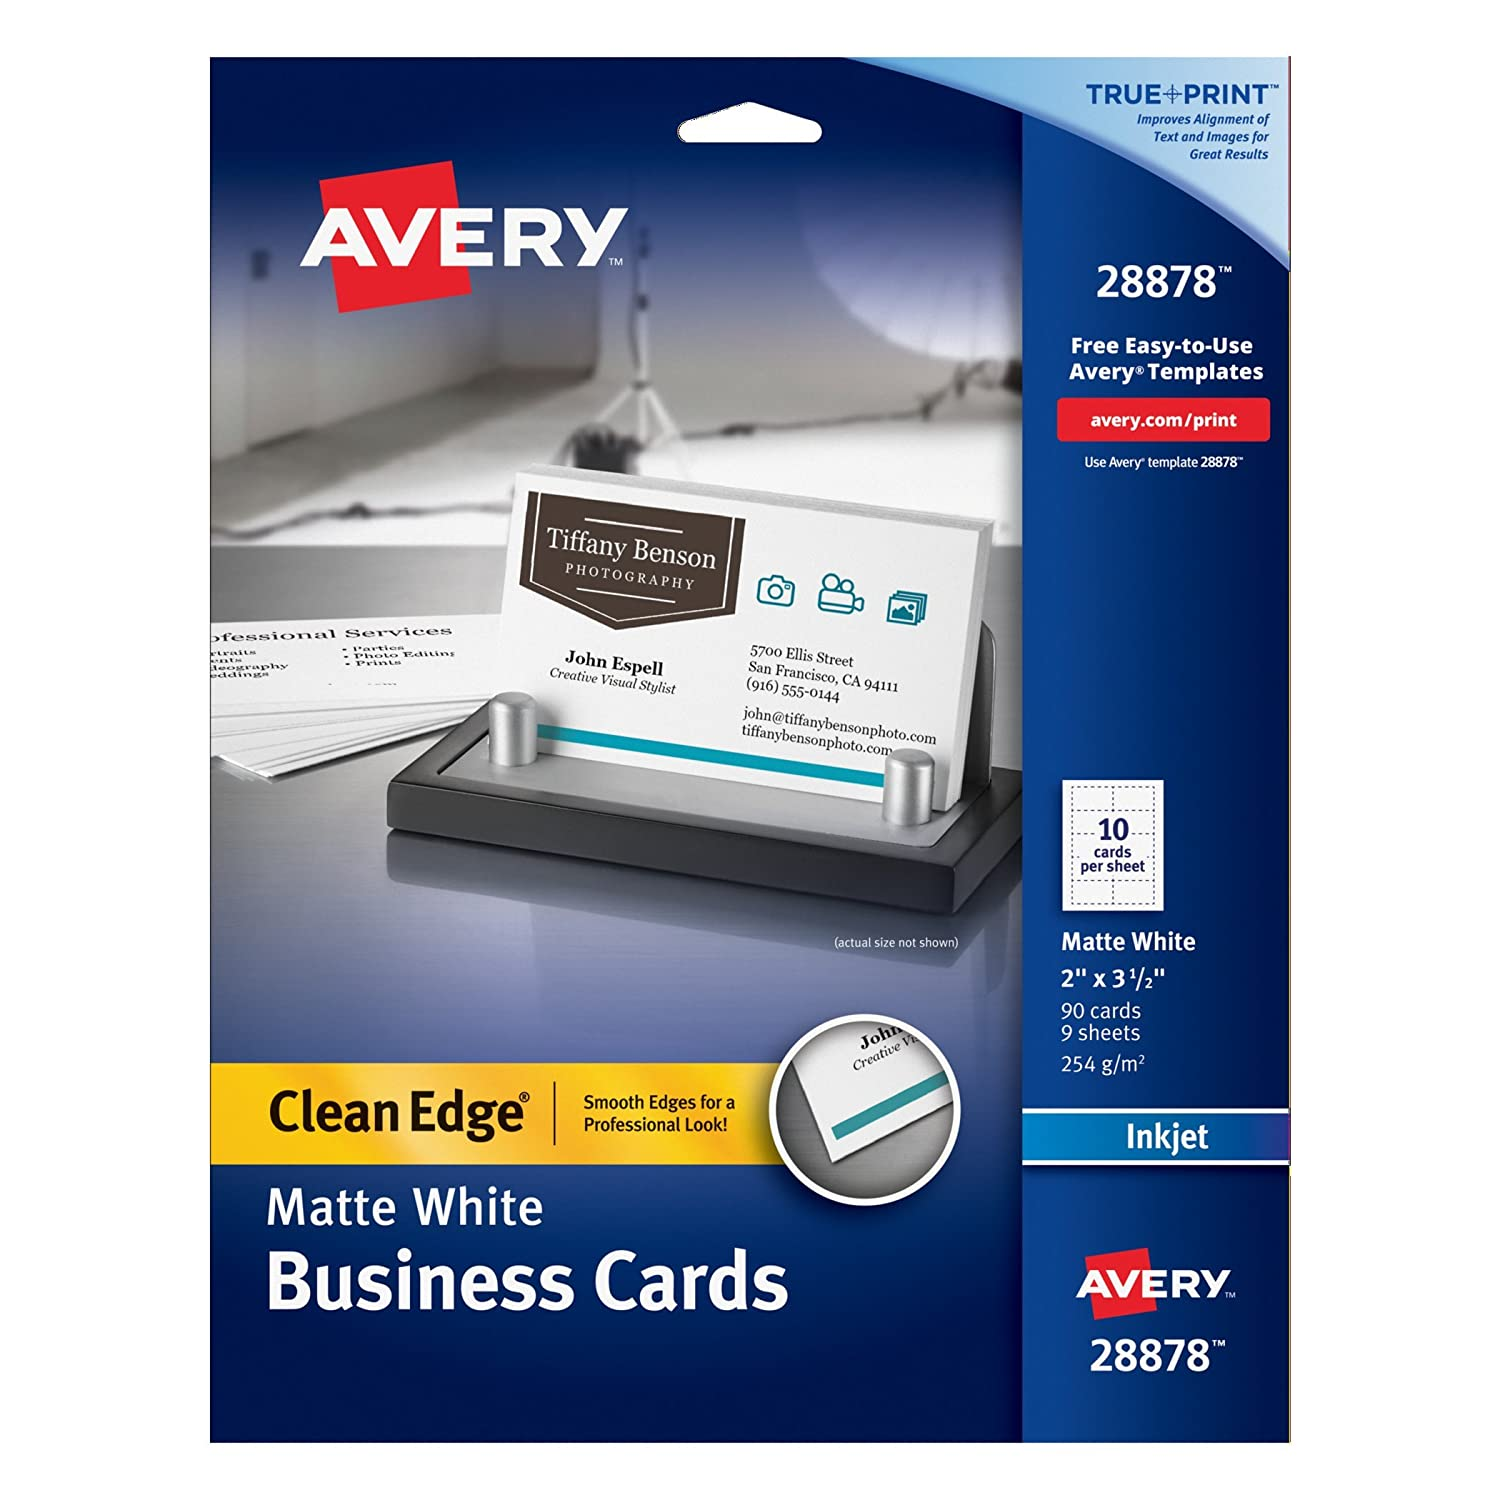 Amazon.com : Avery Clean Edge Business Cards, 2 inches x 3 1/2 ...